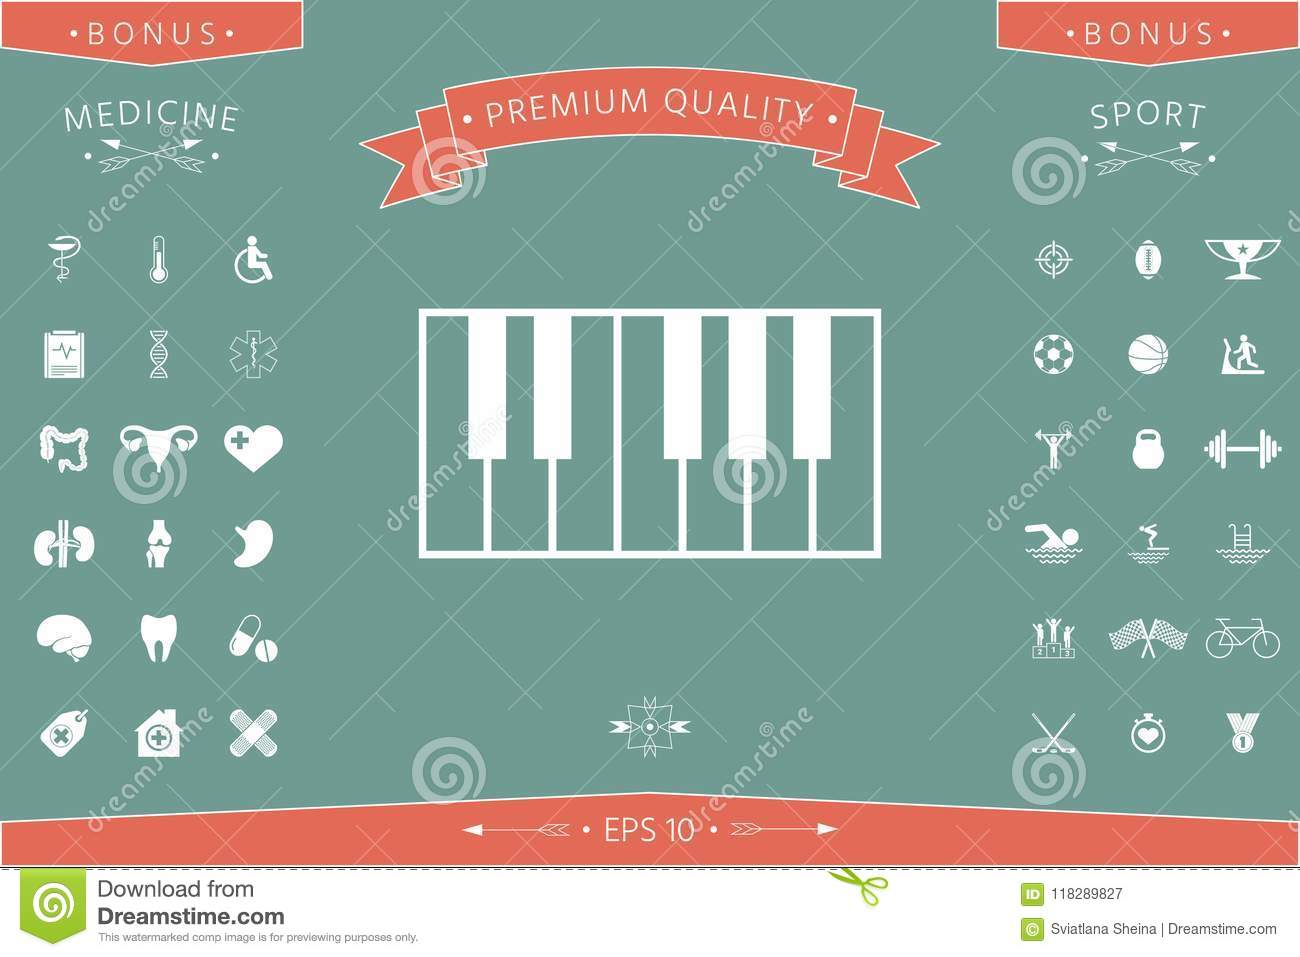 Piano Keyboard Icon Stock Vector Illustration Of Concept 118289827